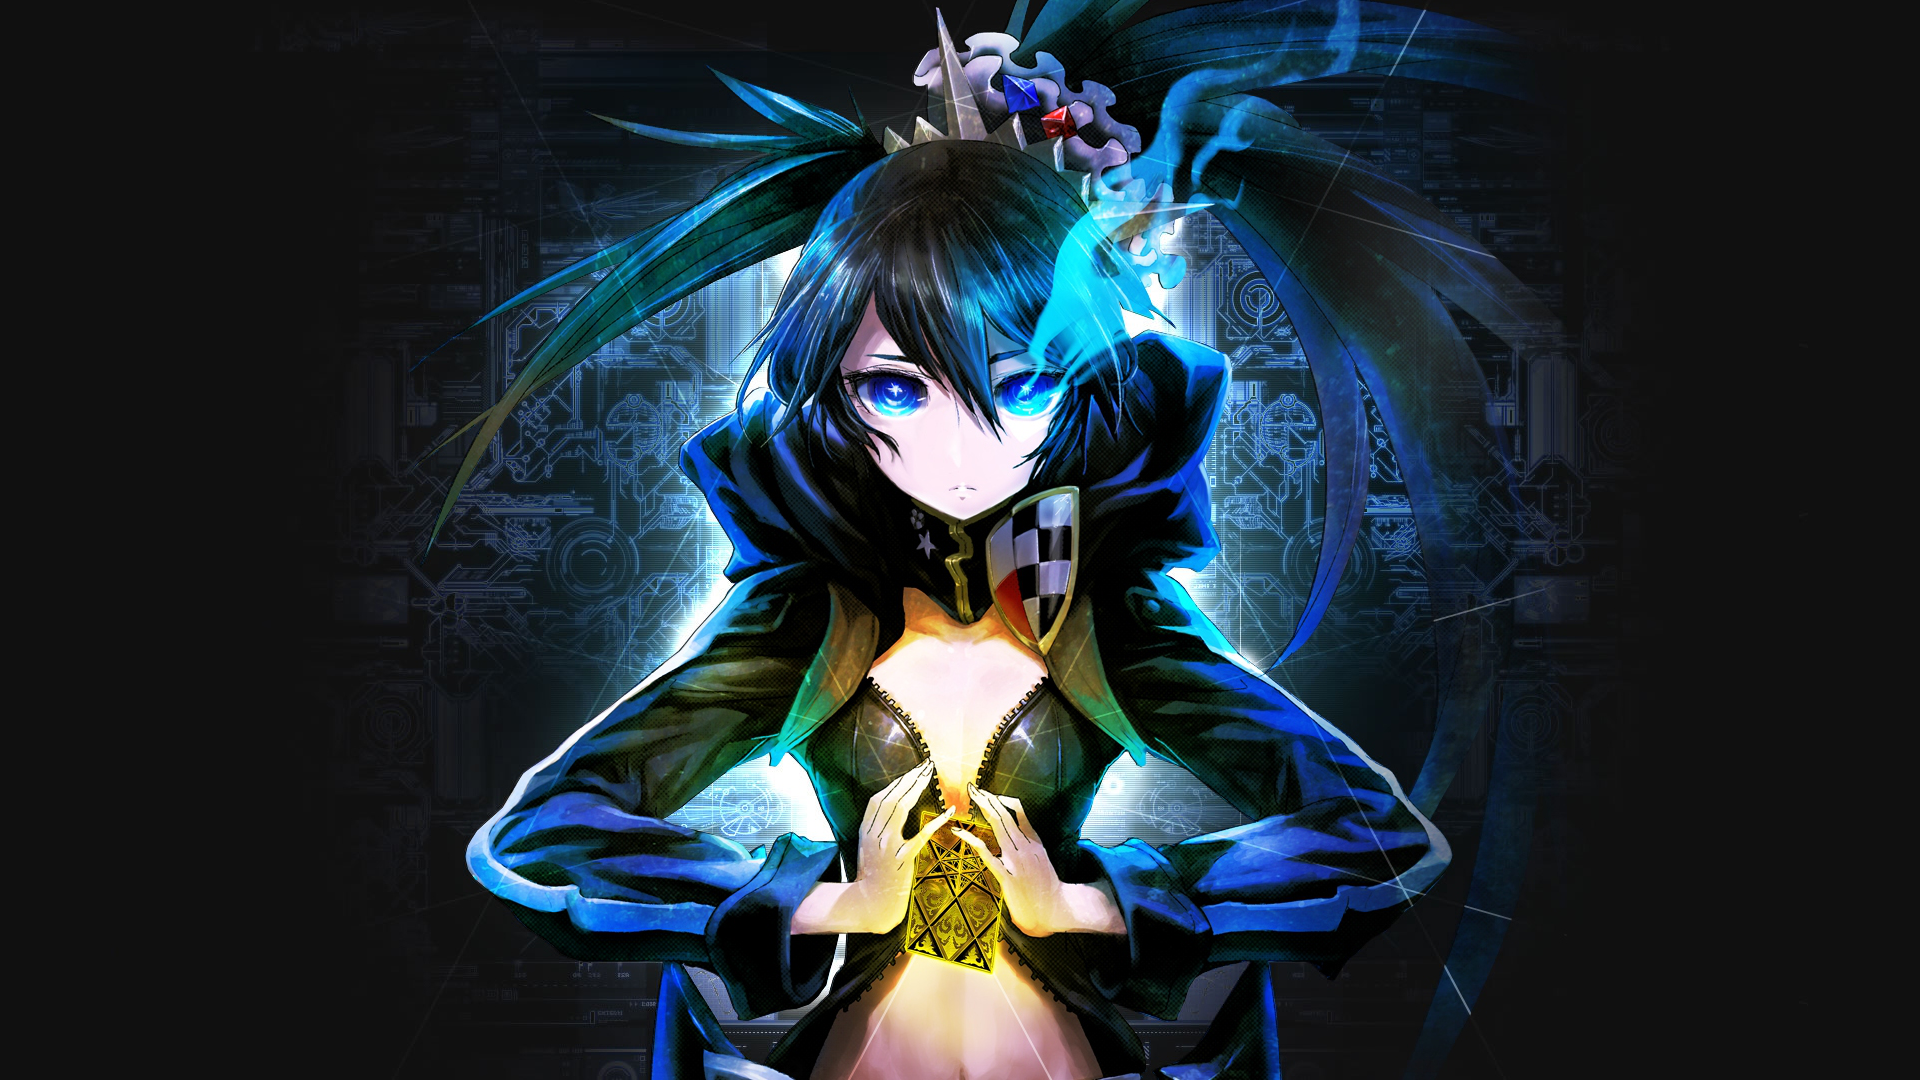 Black Rock Shooter Hd Wallpaper Background Image 1920x1080